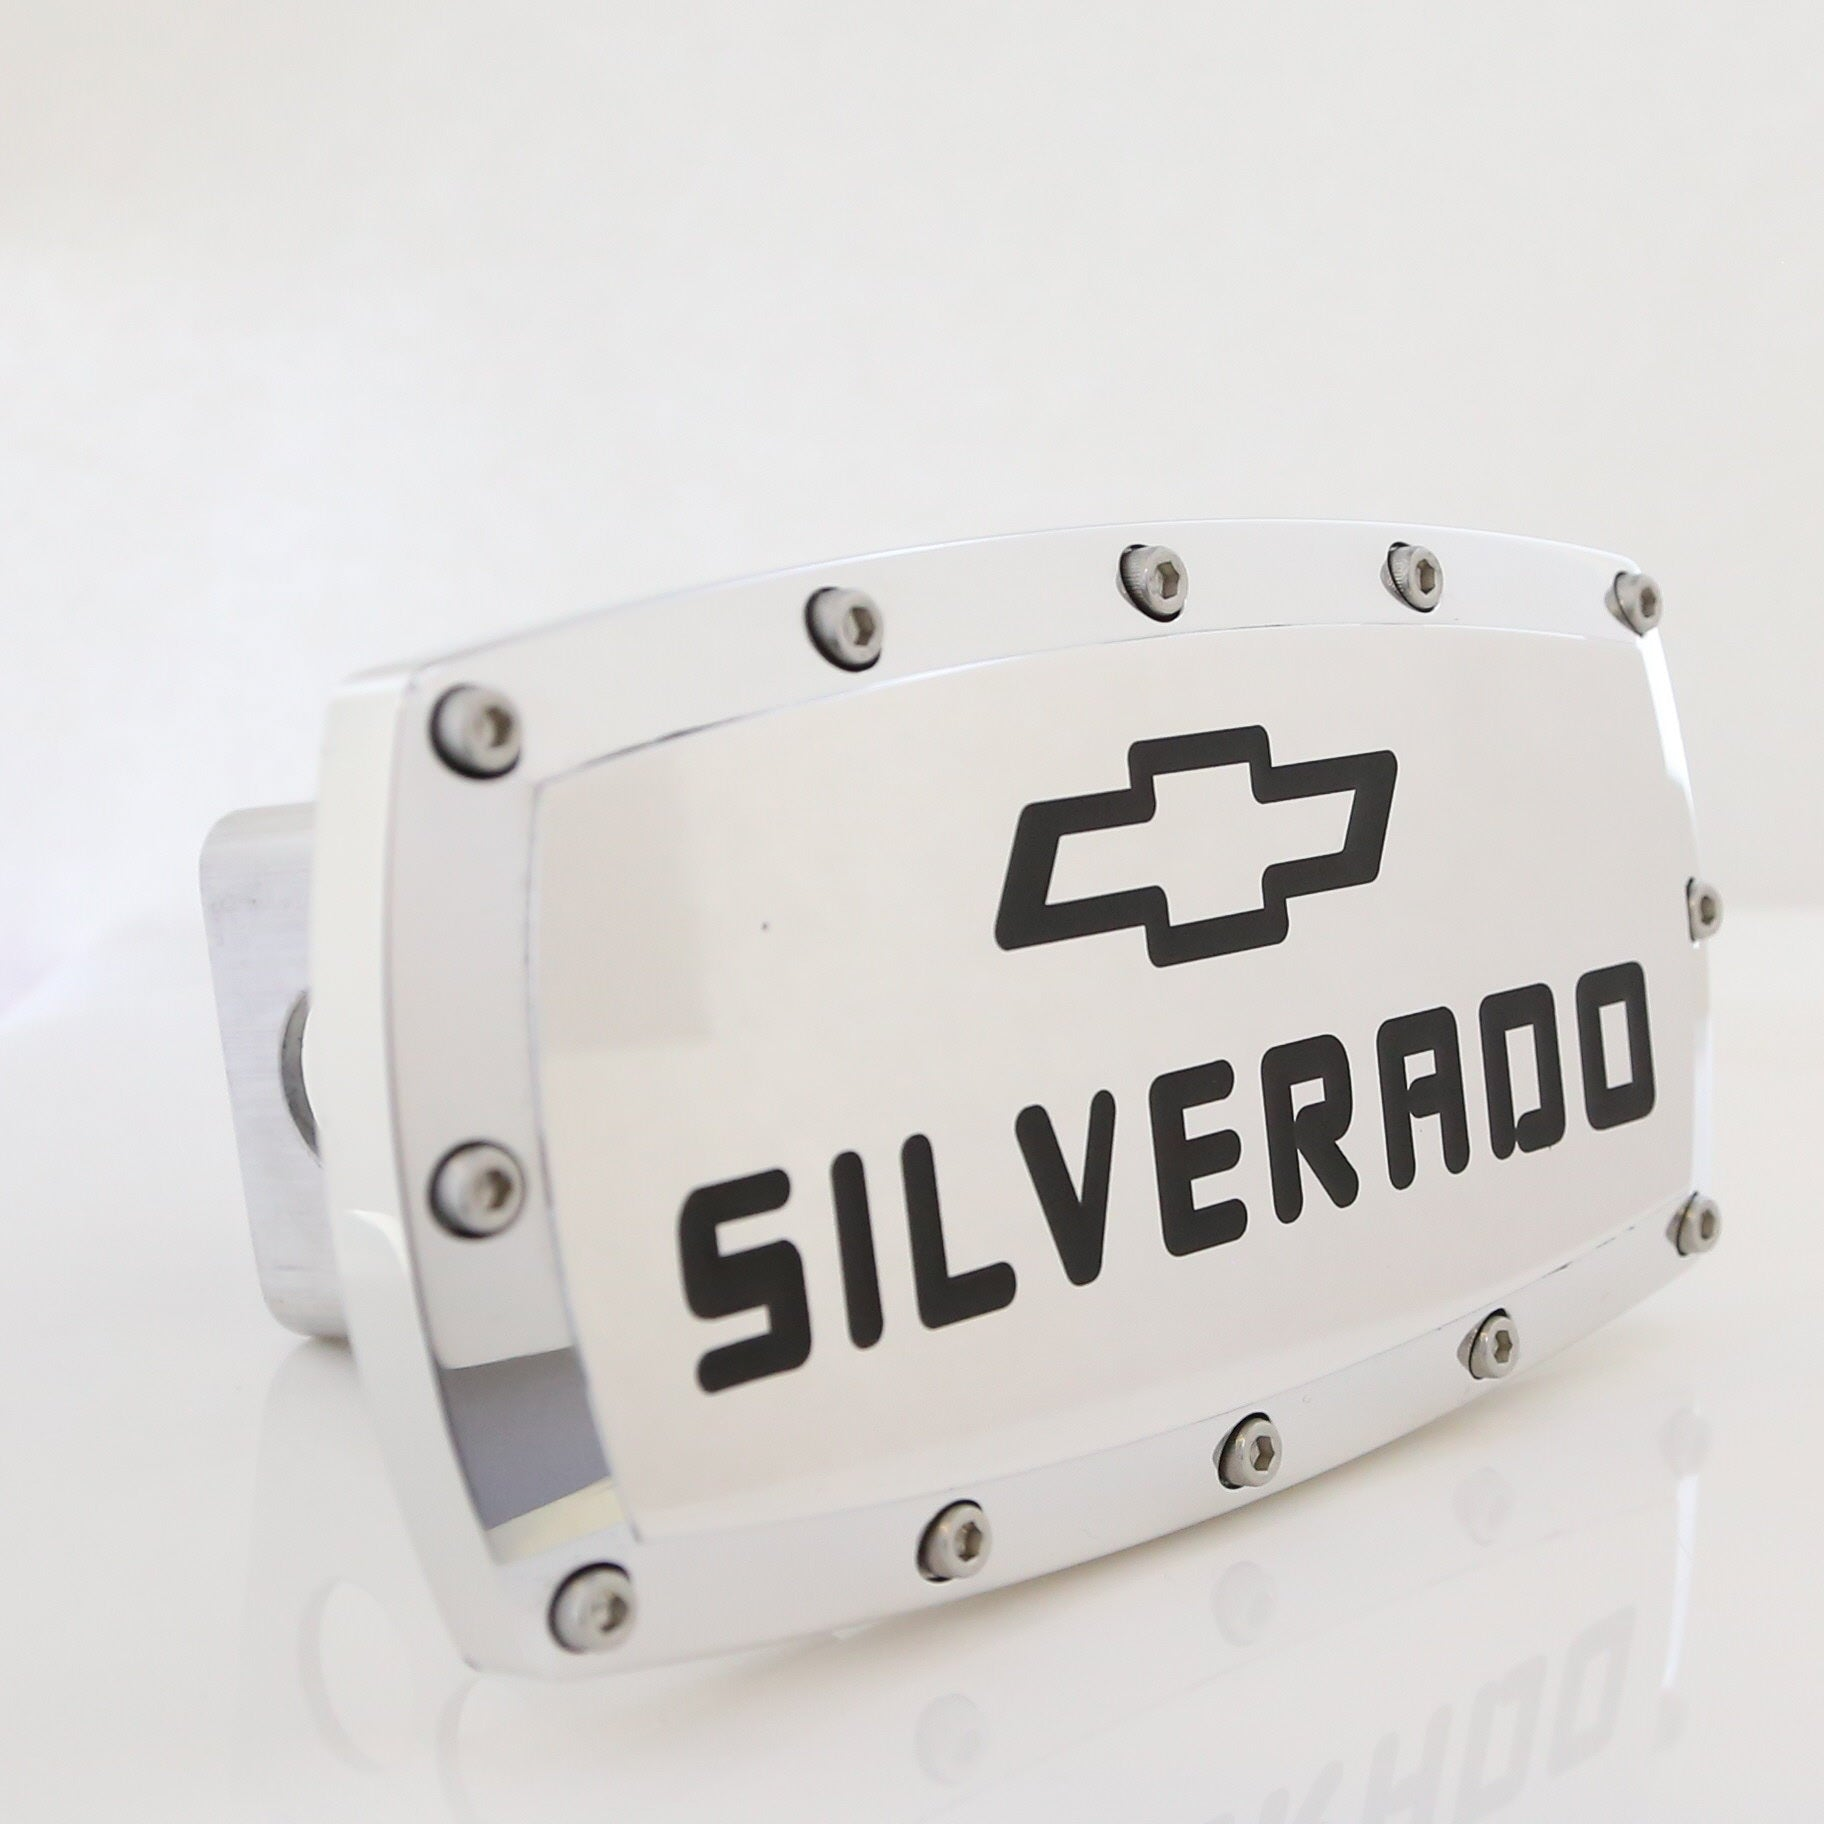 Chevy Silverado Hitch Cover